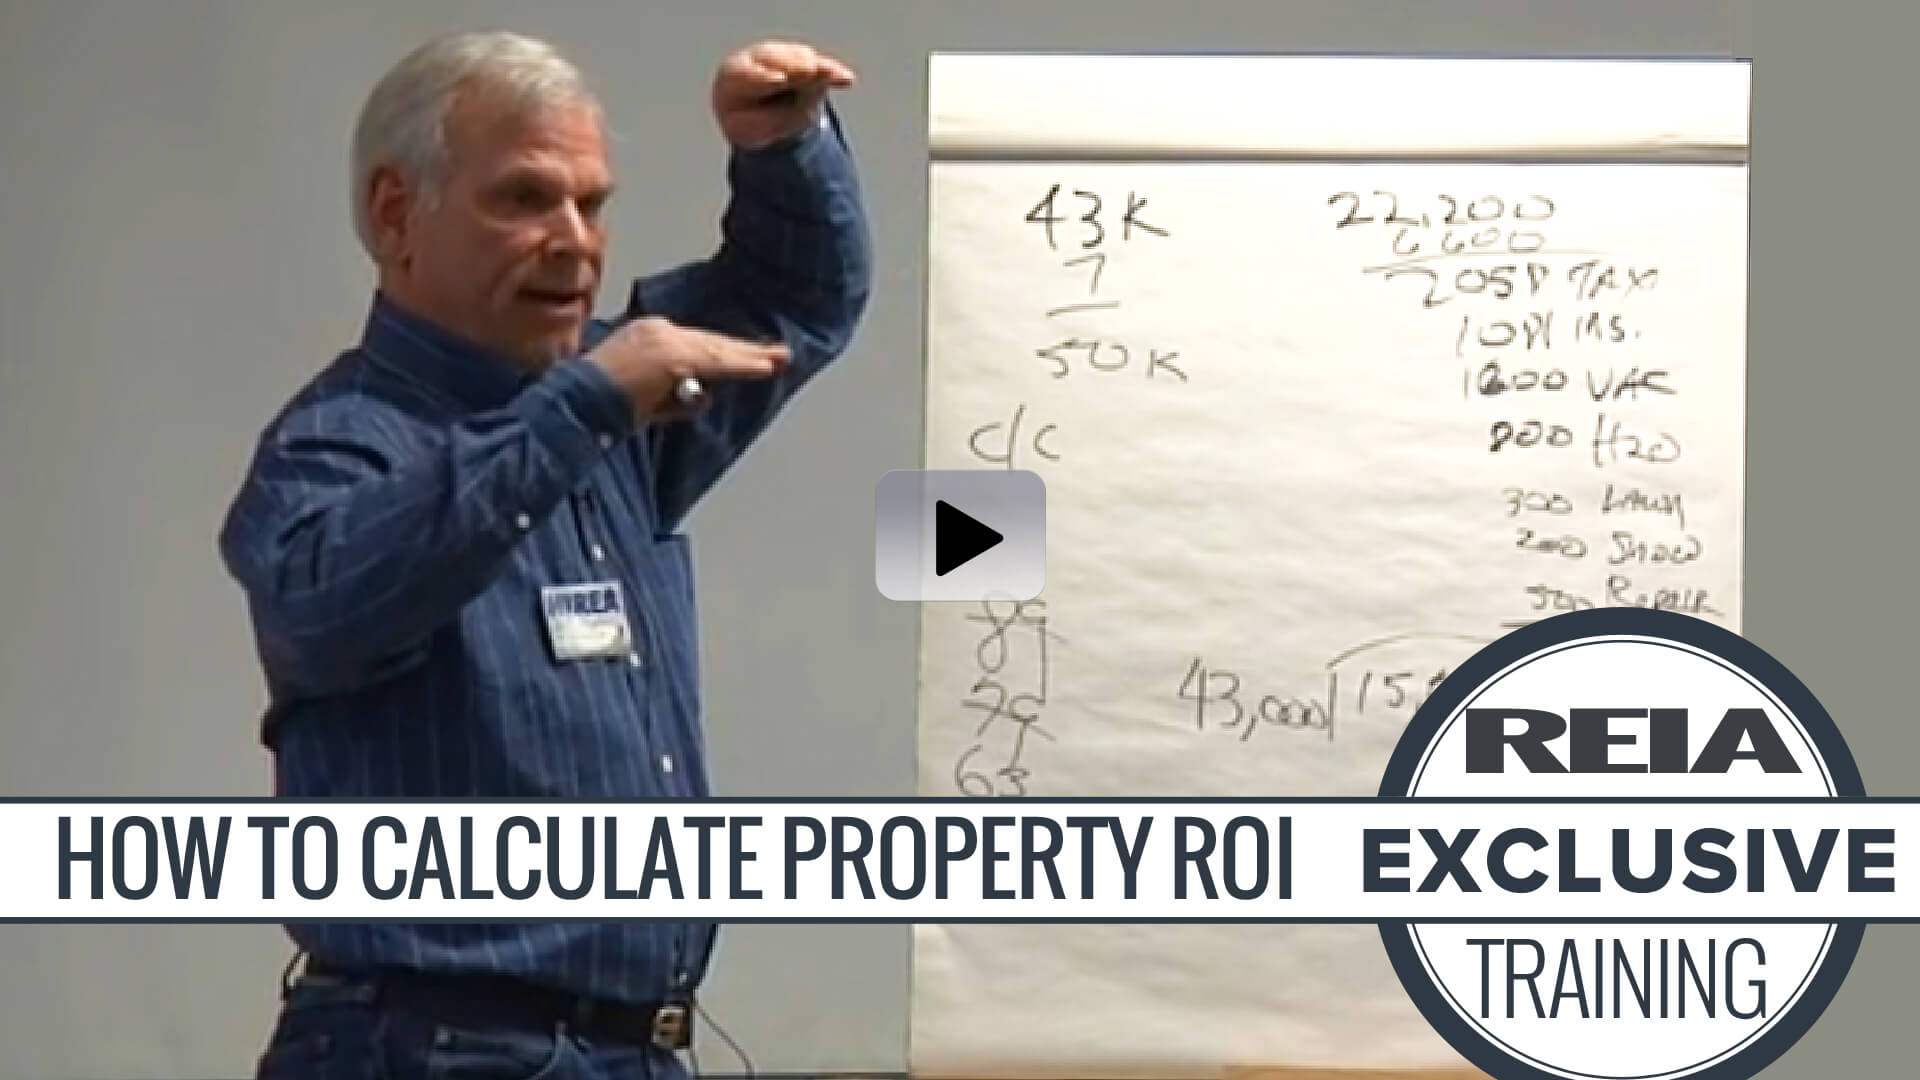 Best Detailed Steps to figure Fort Wayne Investment Property Return on Investment ROI Training On Real Estate for Buying Selling Indiana Investment Property